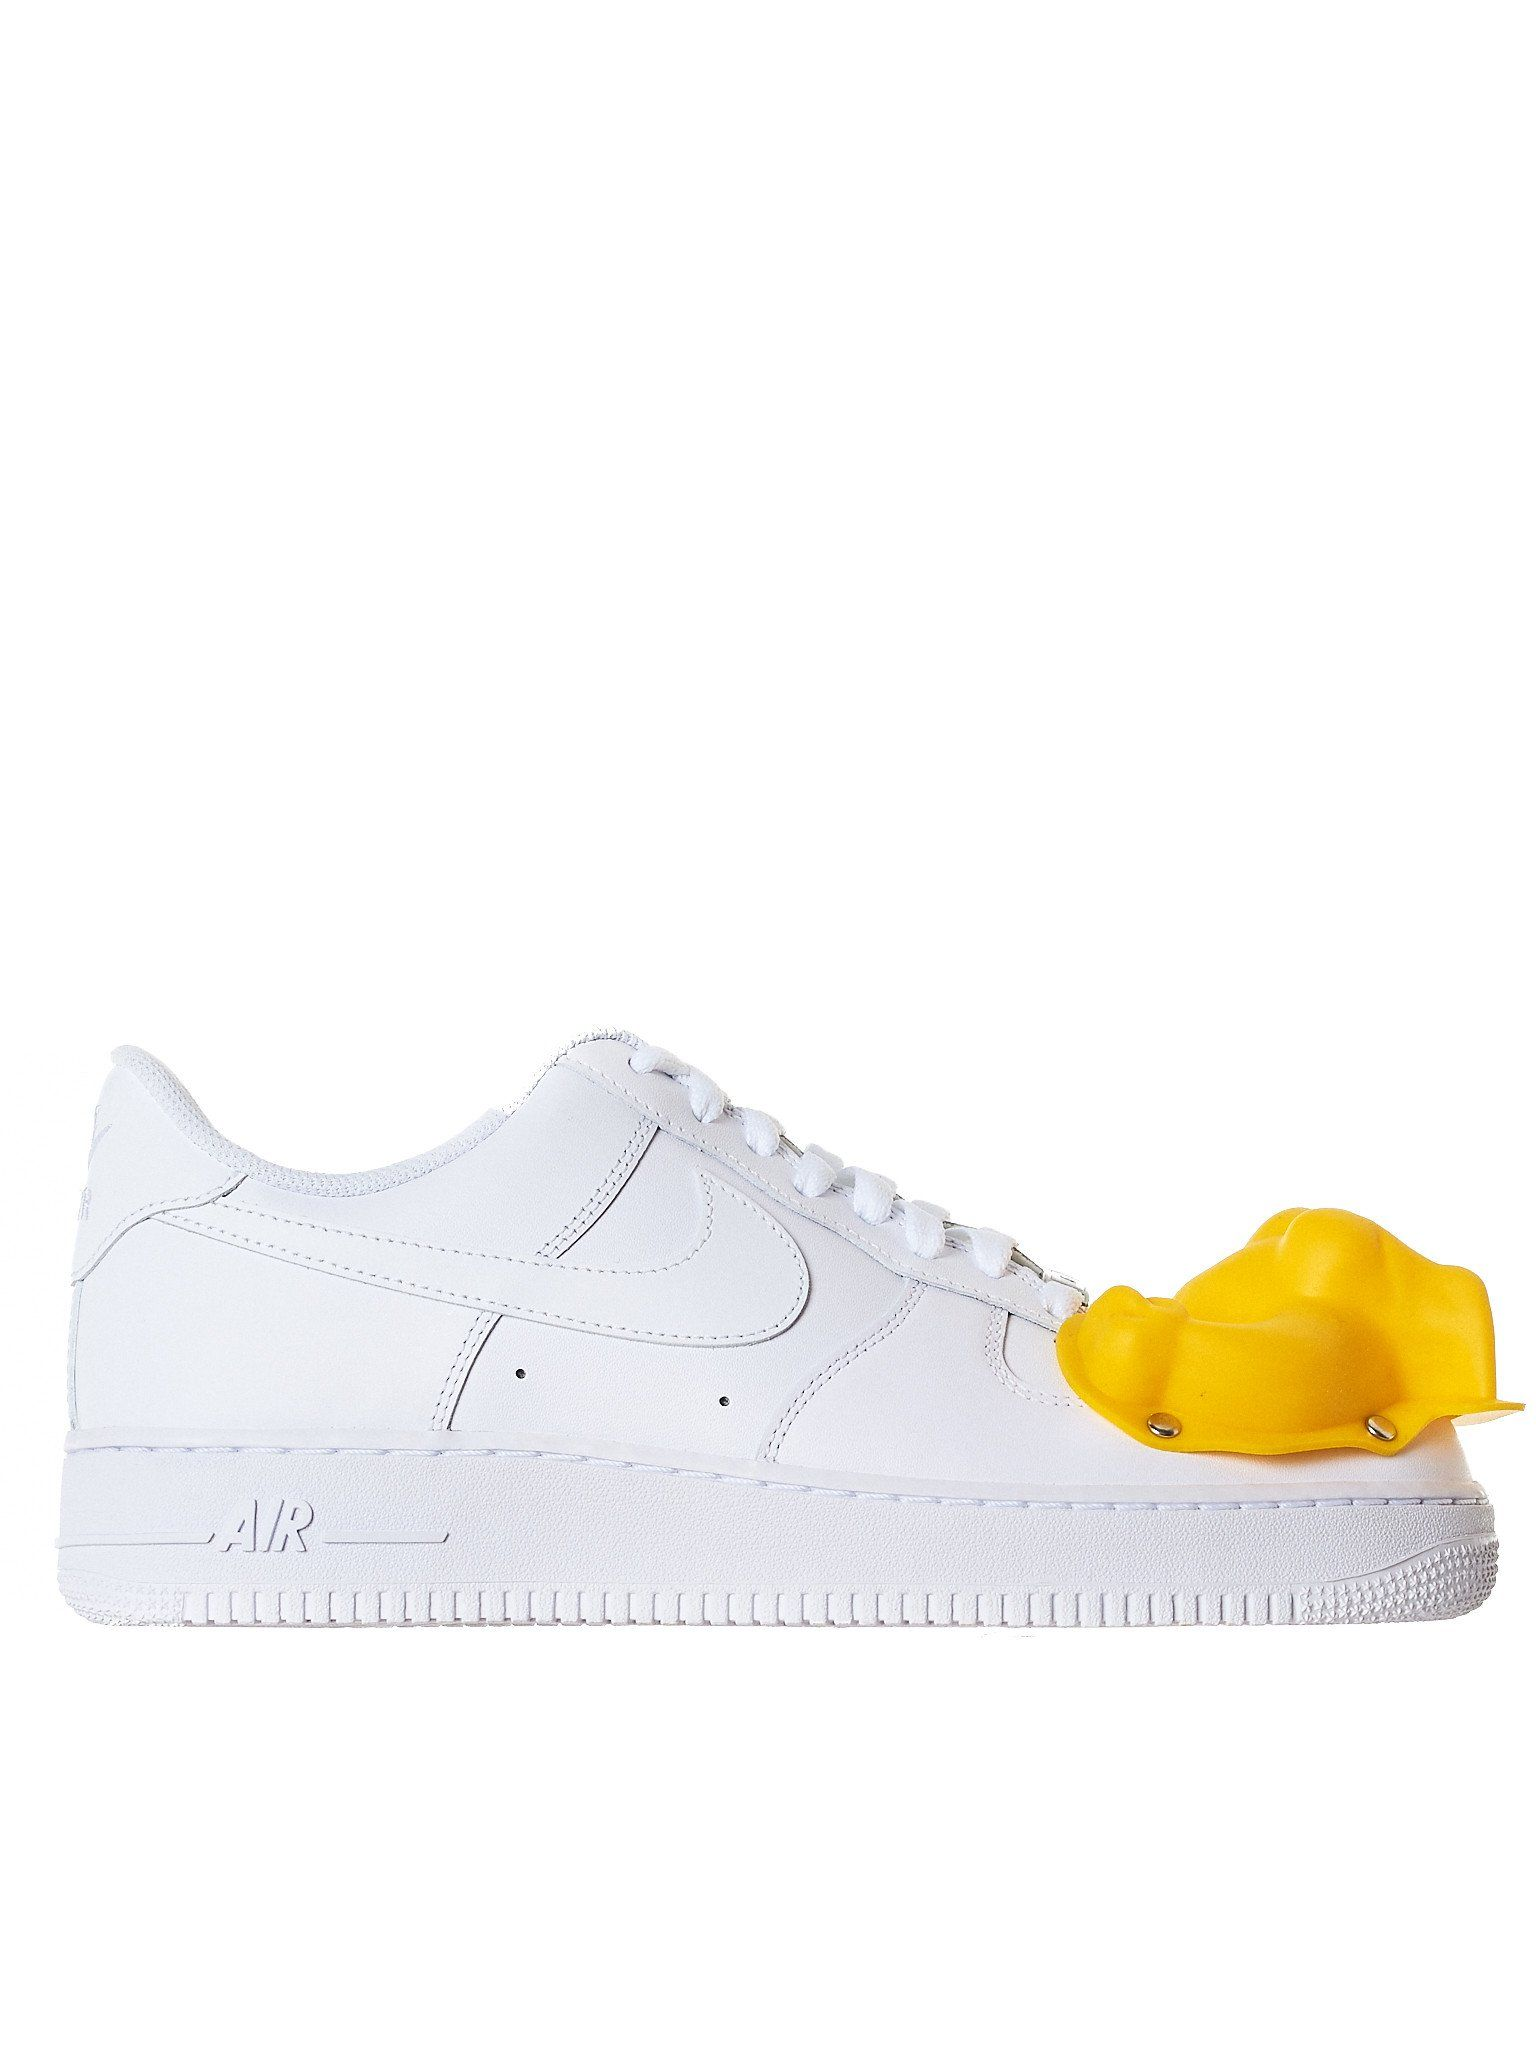 4f2d0cf996225 Nike x CDG Comme des Garçons x Nike Air Force Ones in white featuring a  silicone-based riveted